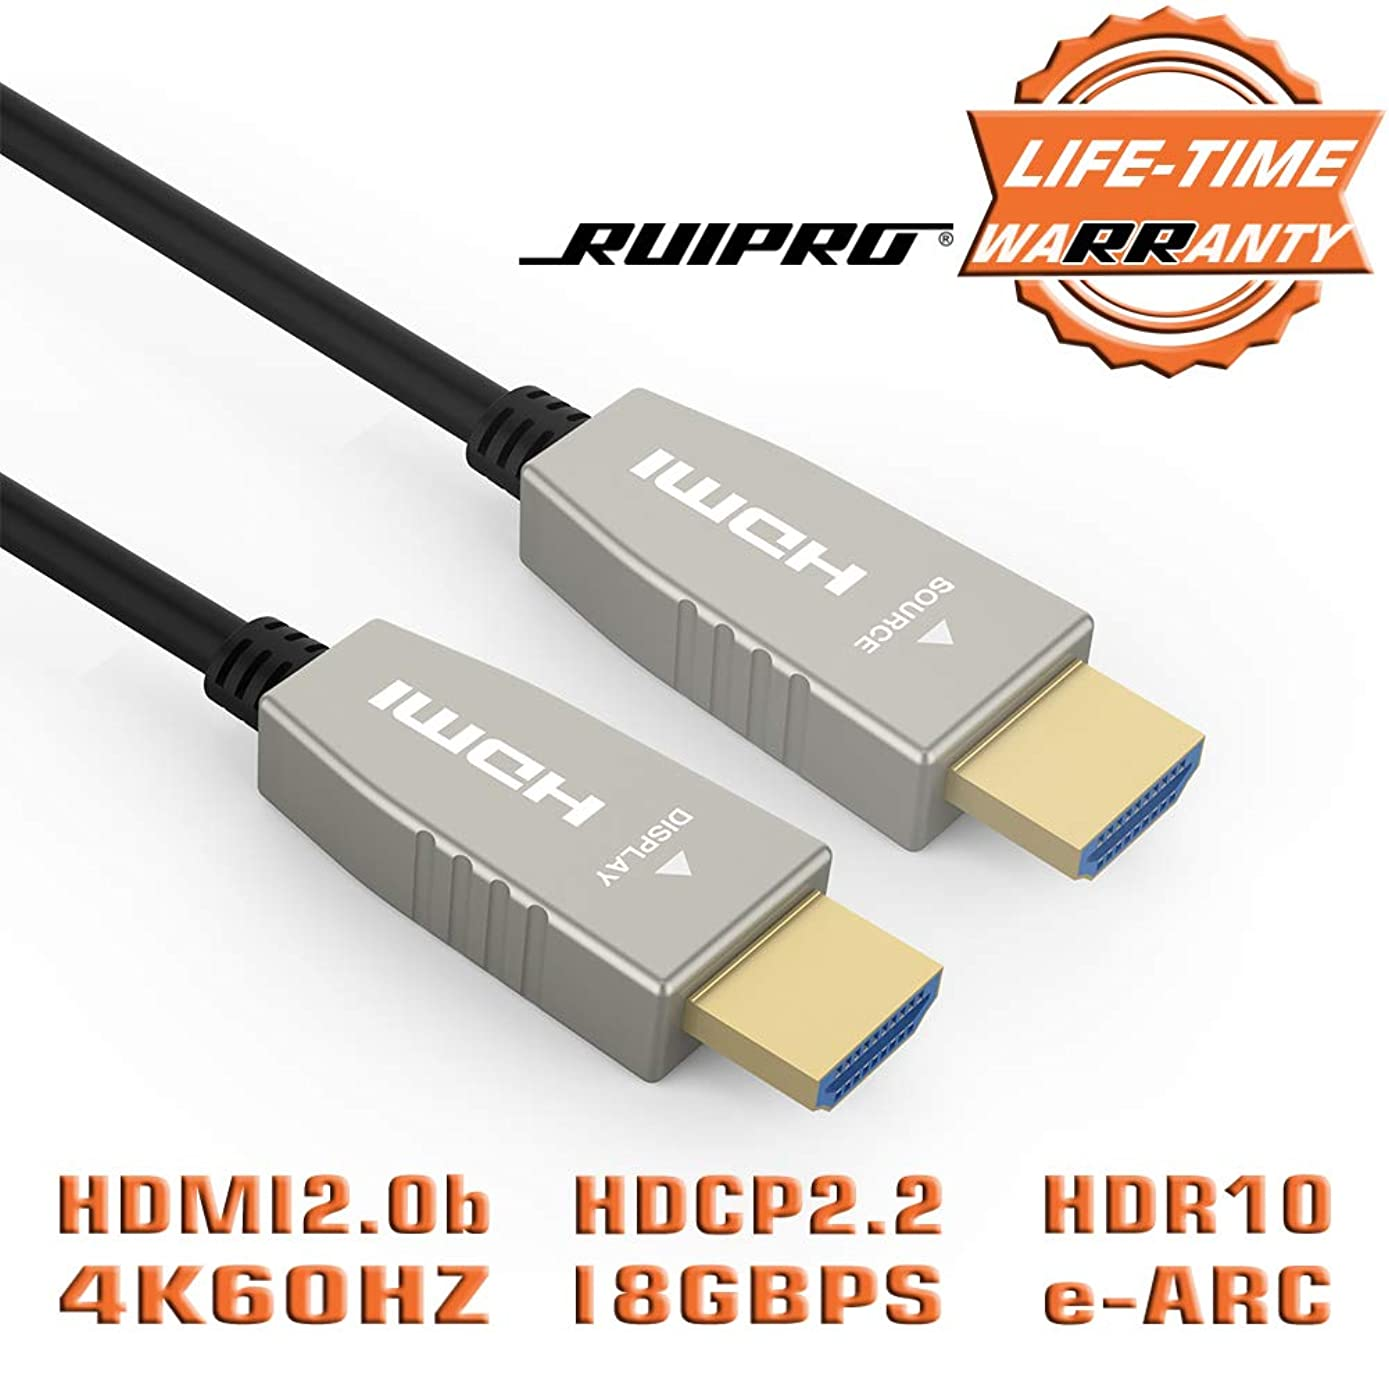 Fiber HDMI Cable RUIPRO 4K60HZ HDR 40 feet Light Speed HDMI2.0b Cable, Supports 18.2 Gbps, ARC, HDR10, Dolby Vision, HDCP2.2, 4:4:4, Ultra Slim and Flexible HDMI Optic Cable with Optic Technology 12m